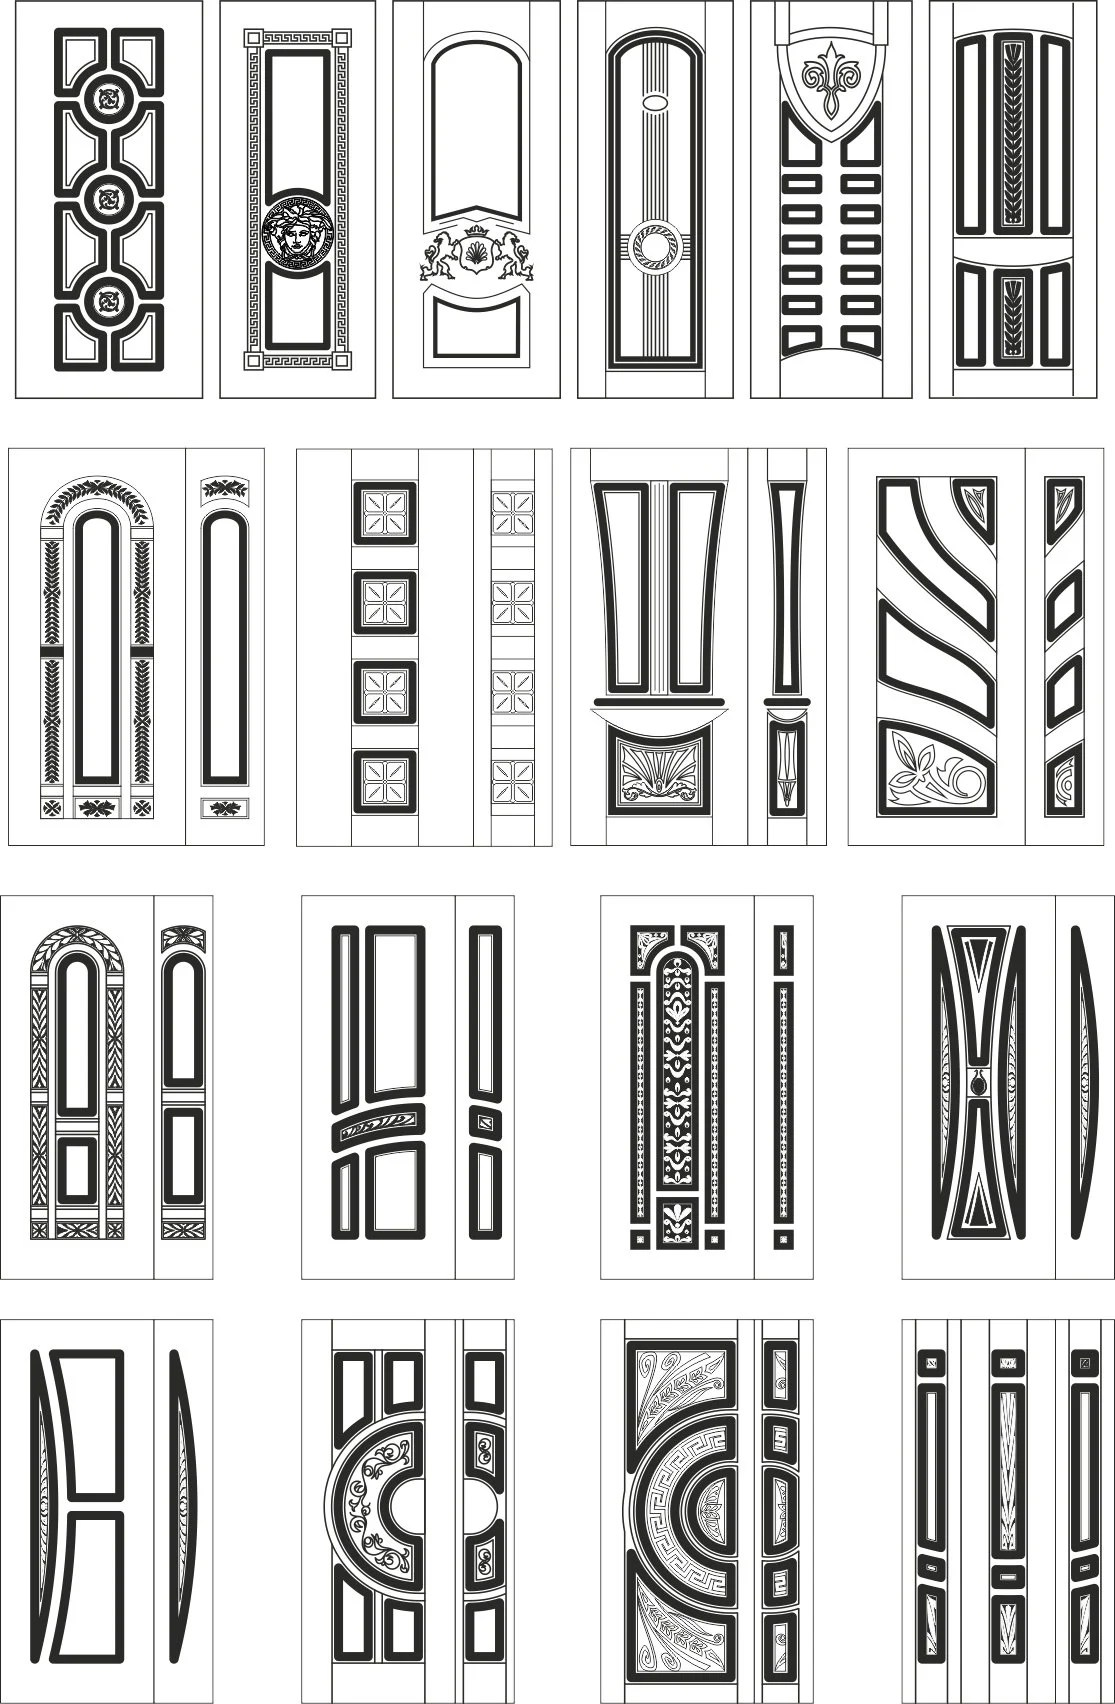 91 Doors Dxf File Best Designs For Cnc Router Dxf File